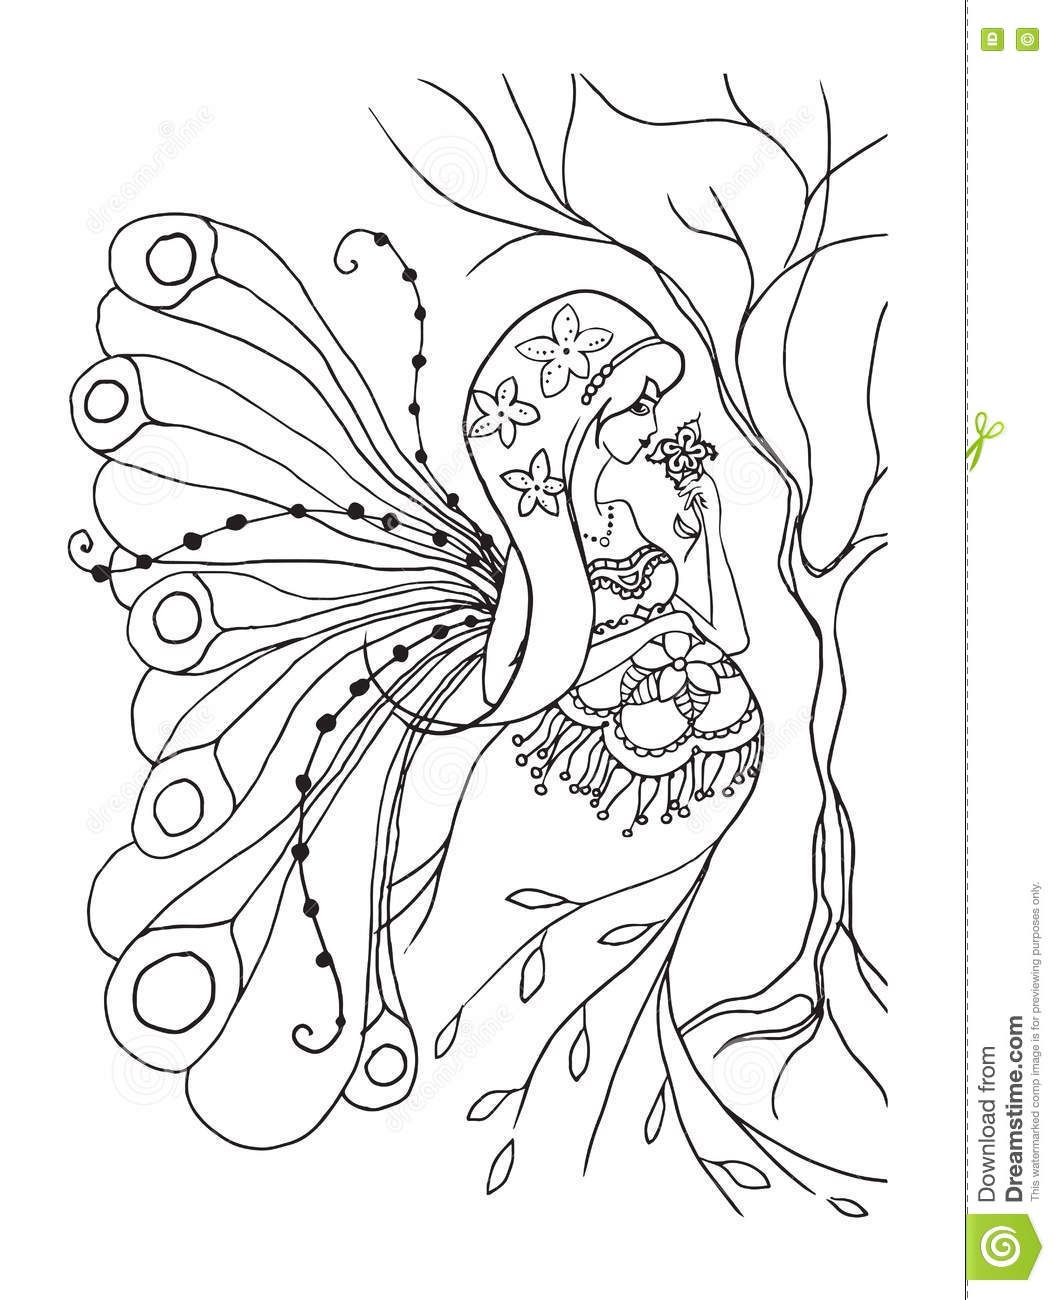 Pin On Coloring Pregnant Baby Mariage Familie